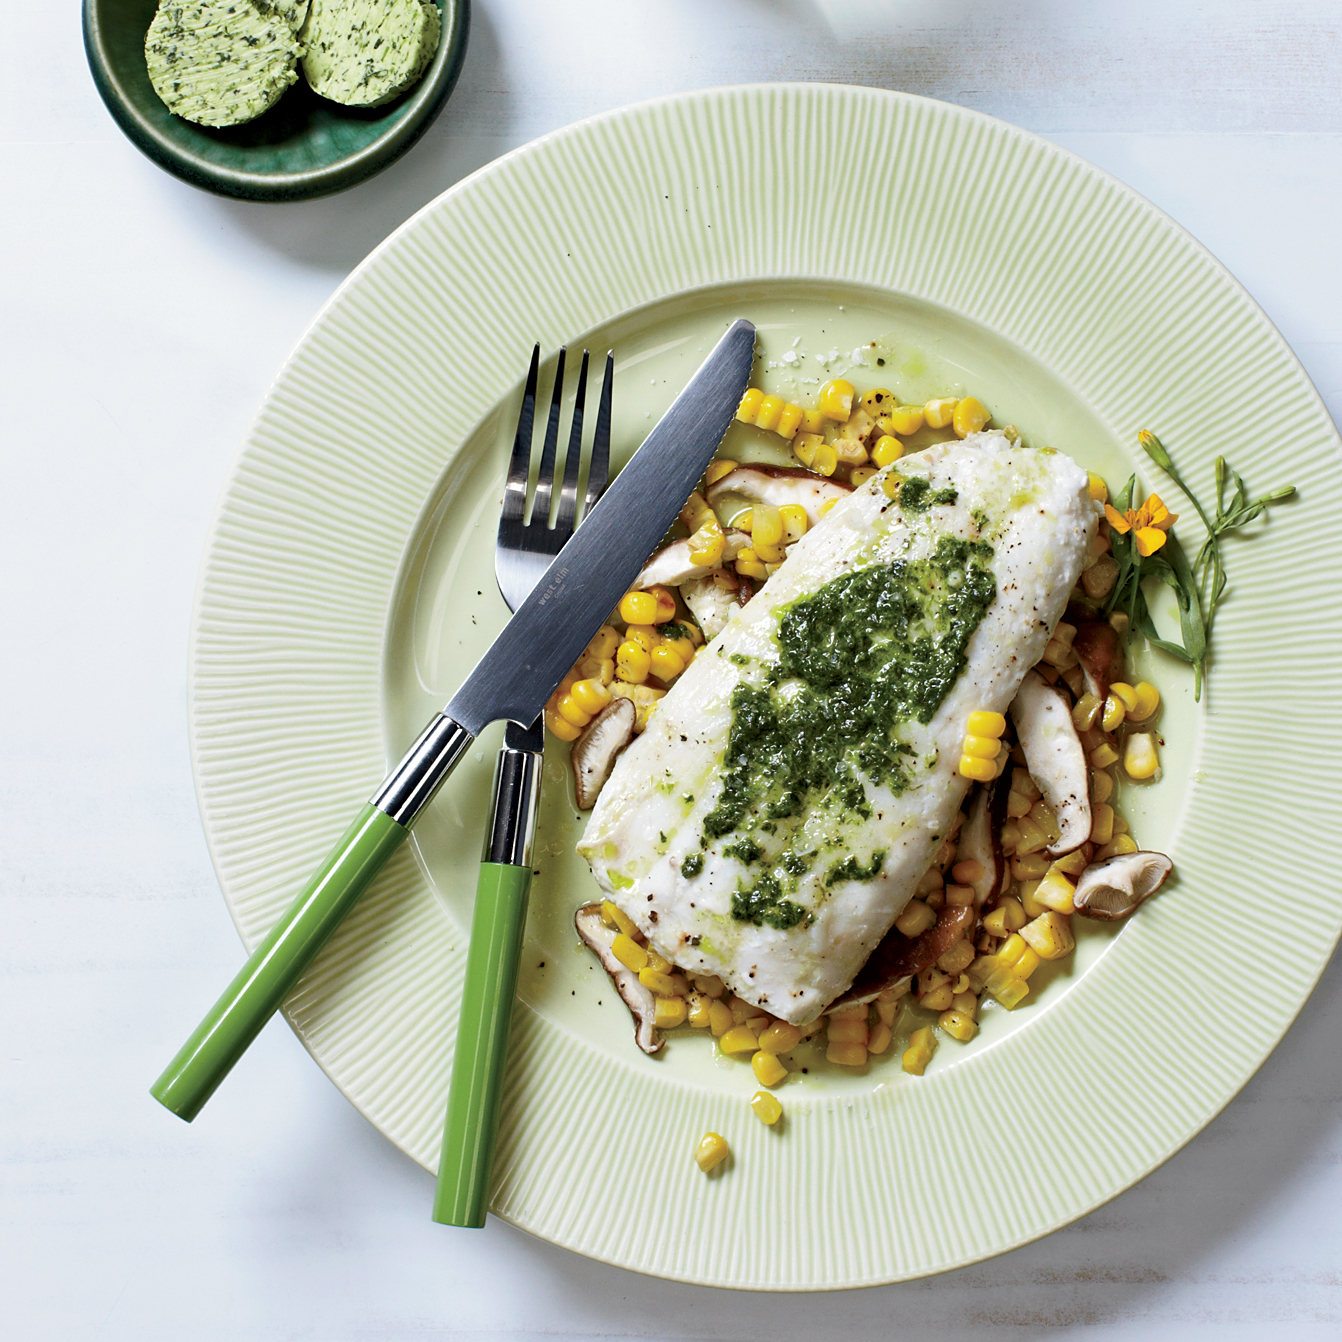 original-201208-r-halibut-and-corn-hobo-packs-with-herbed-butter.jpg